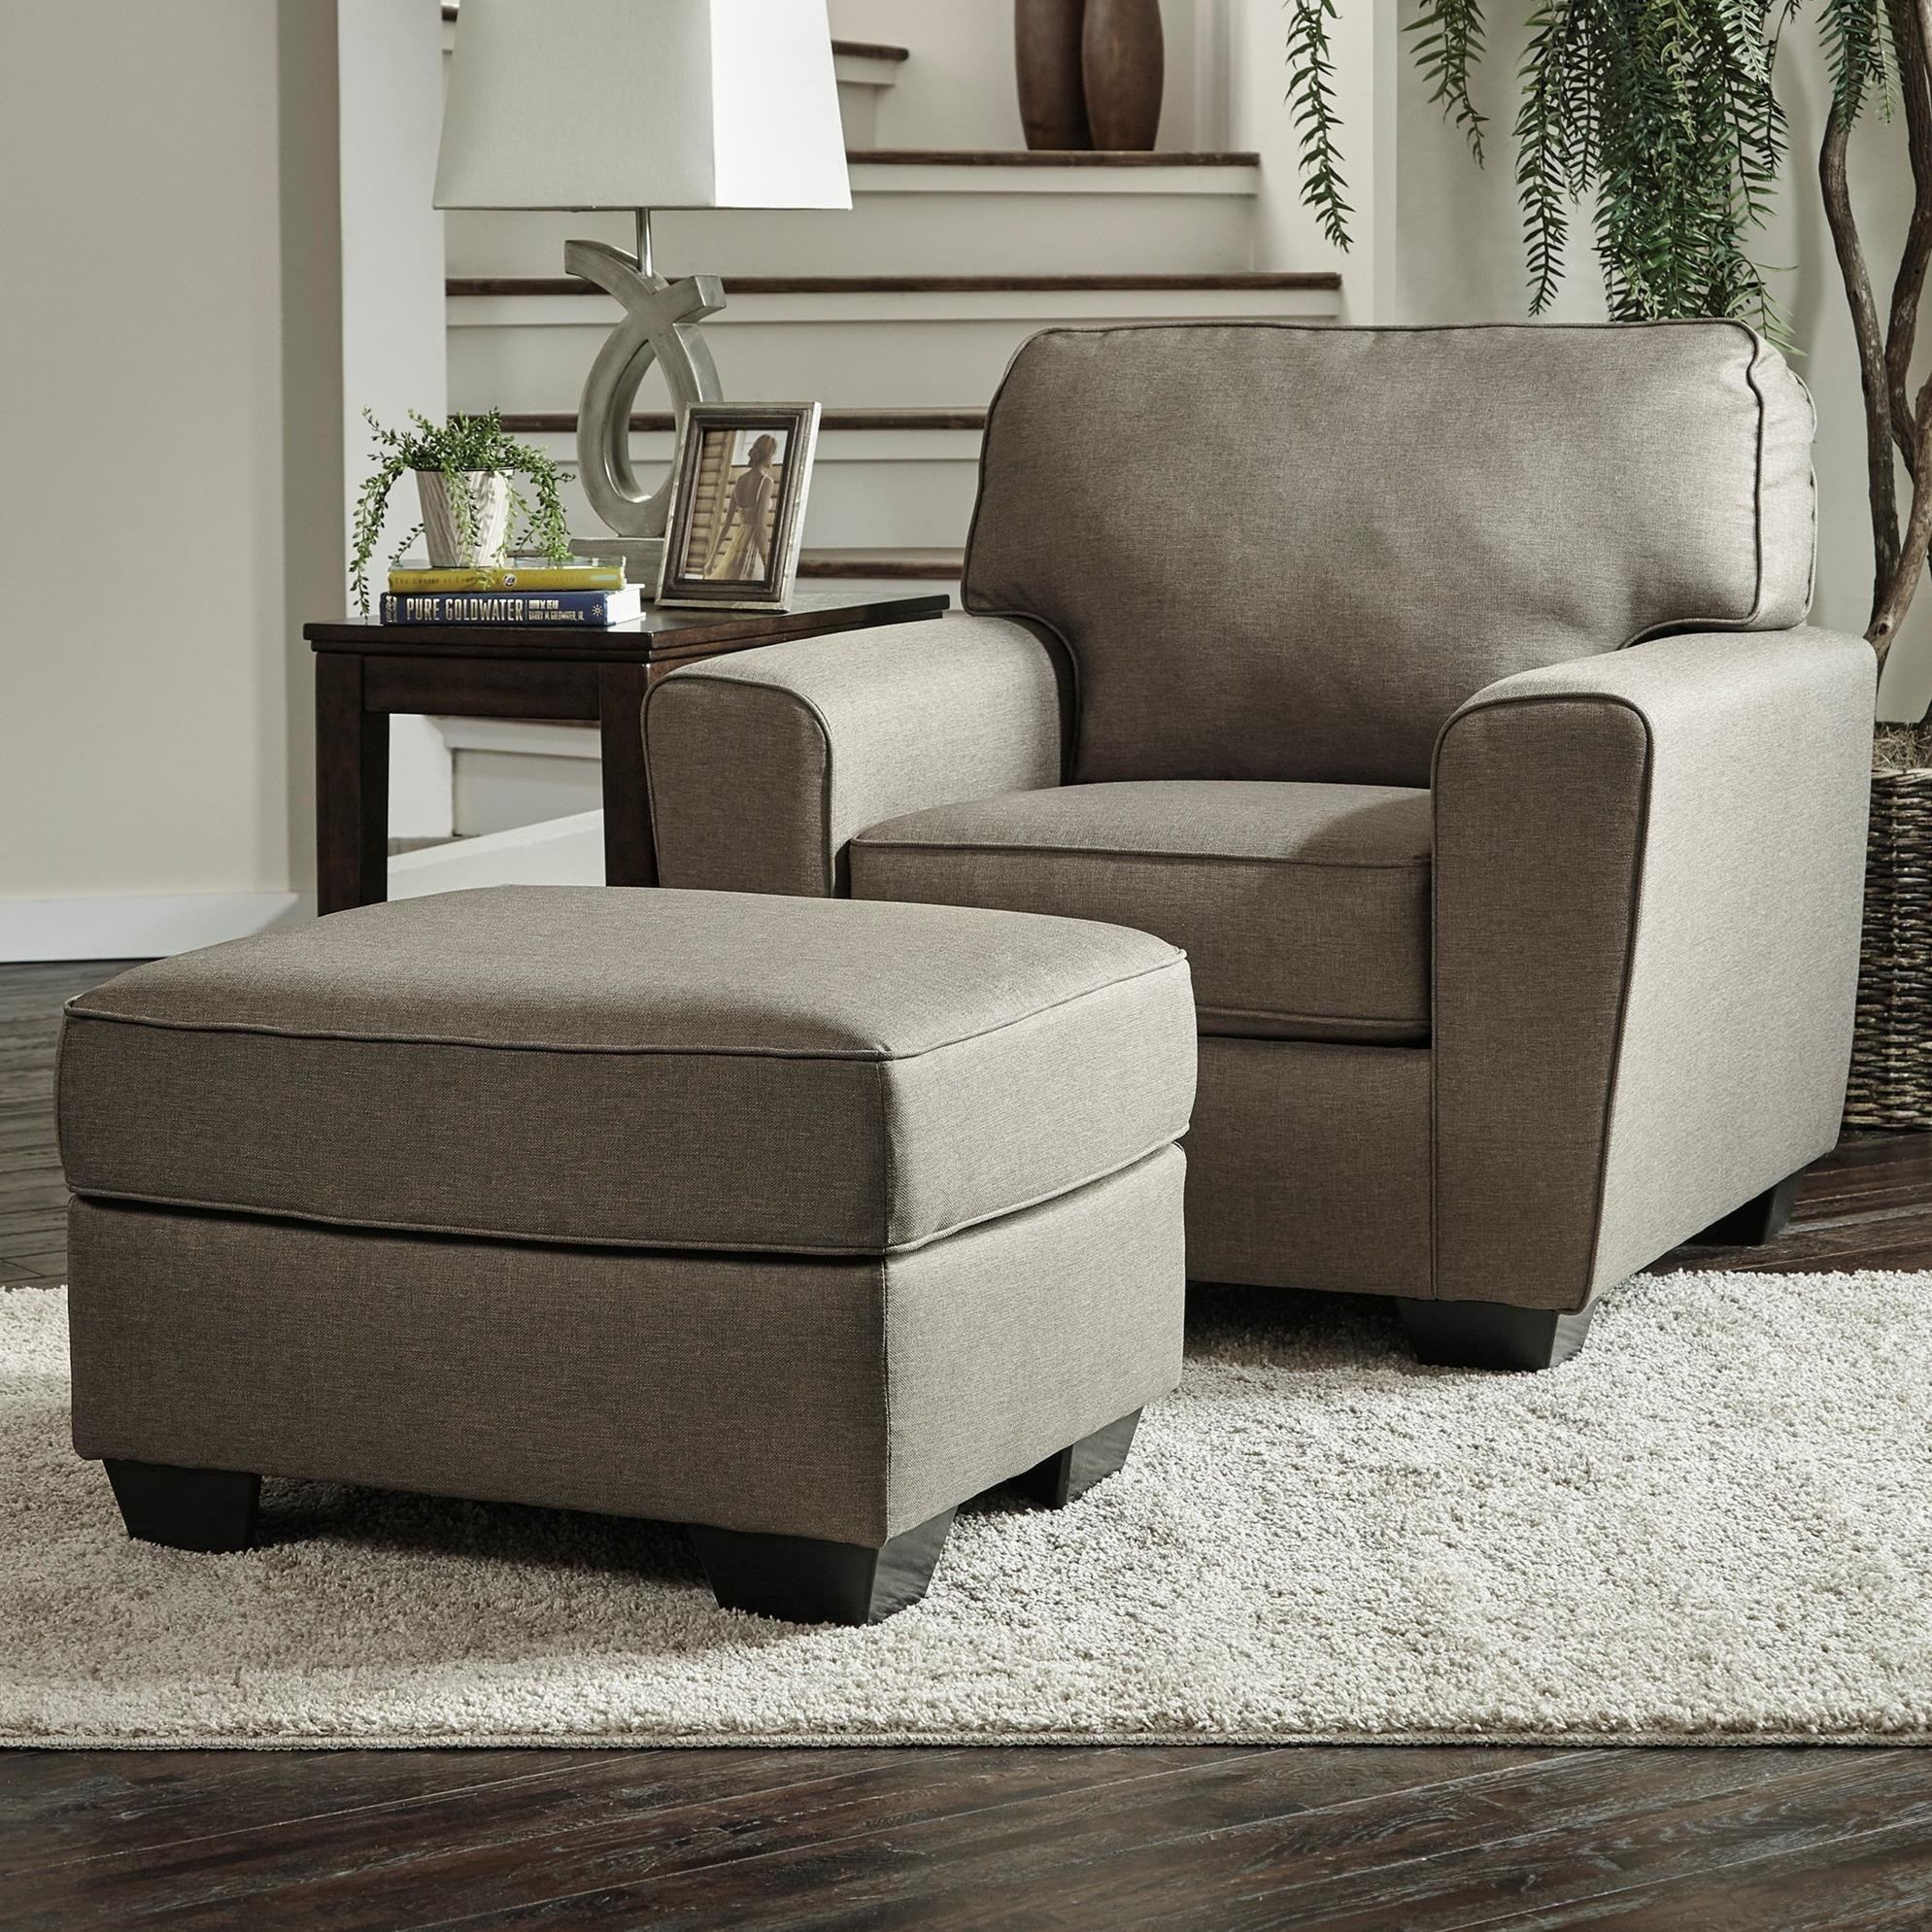 Calicho Chair & Ottoman by Benchcraft at Walker's Furniture